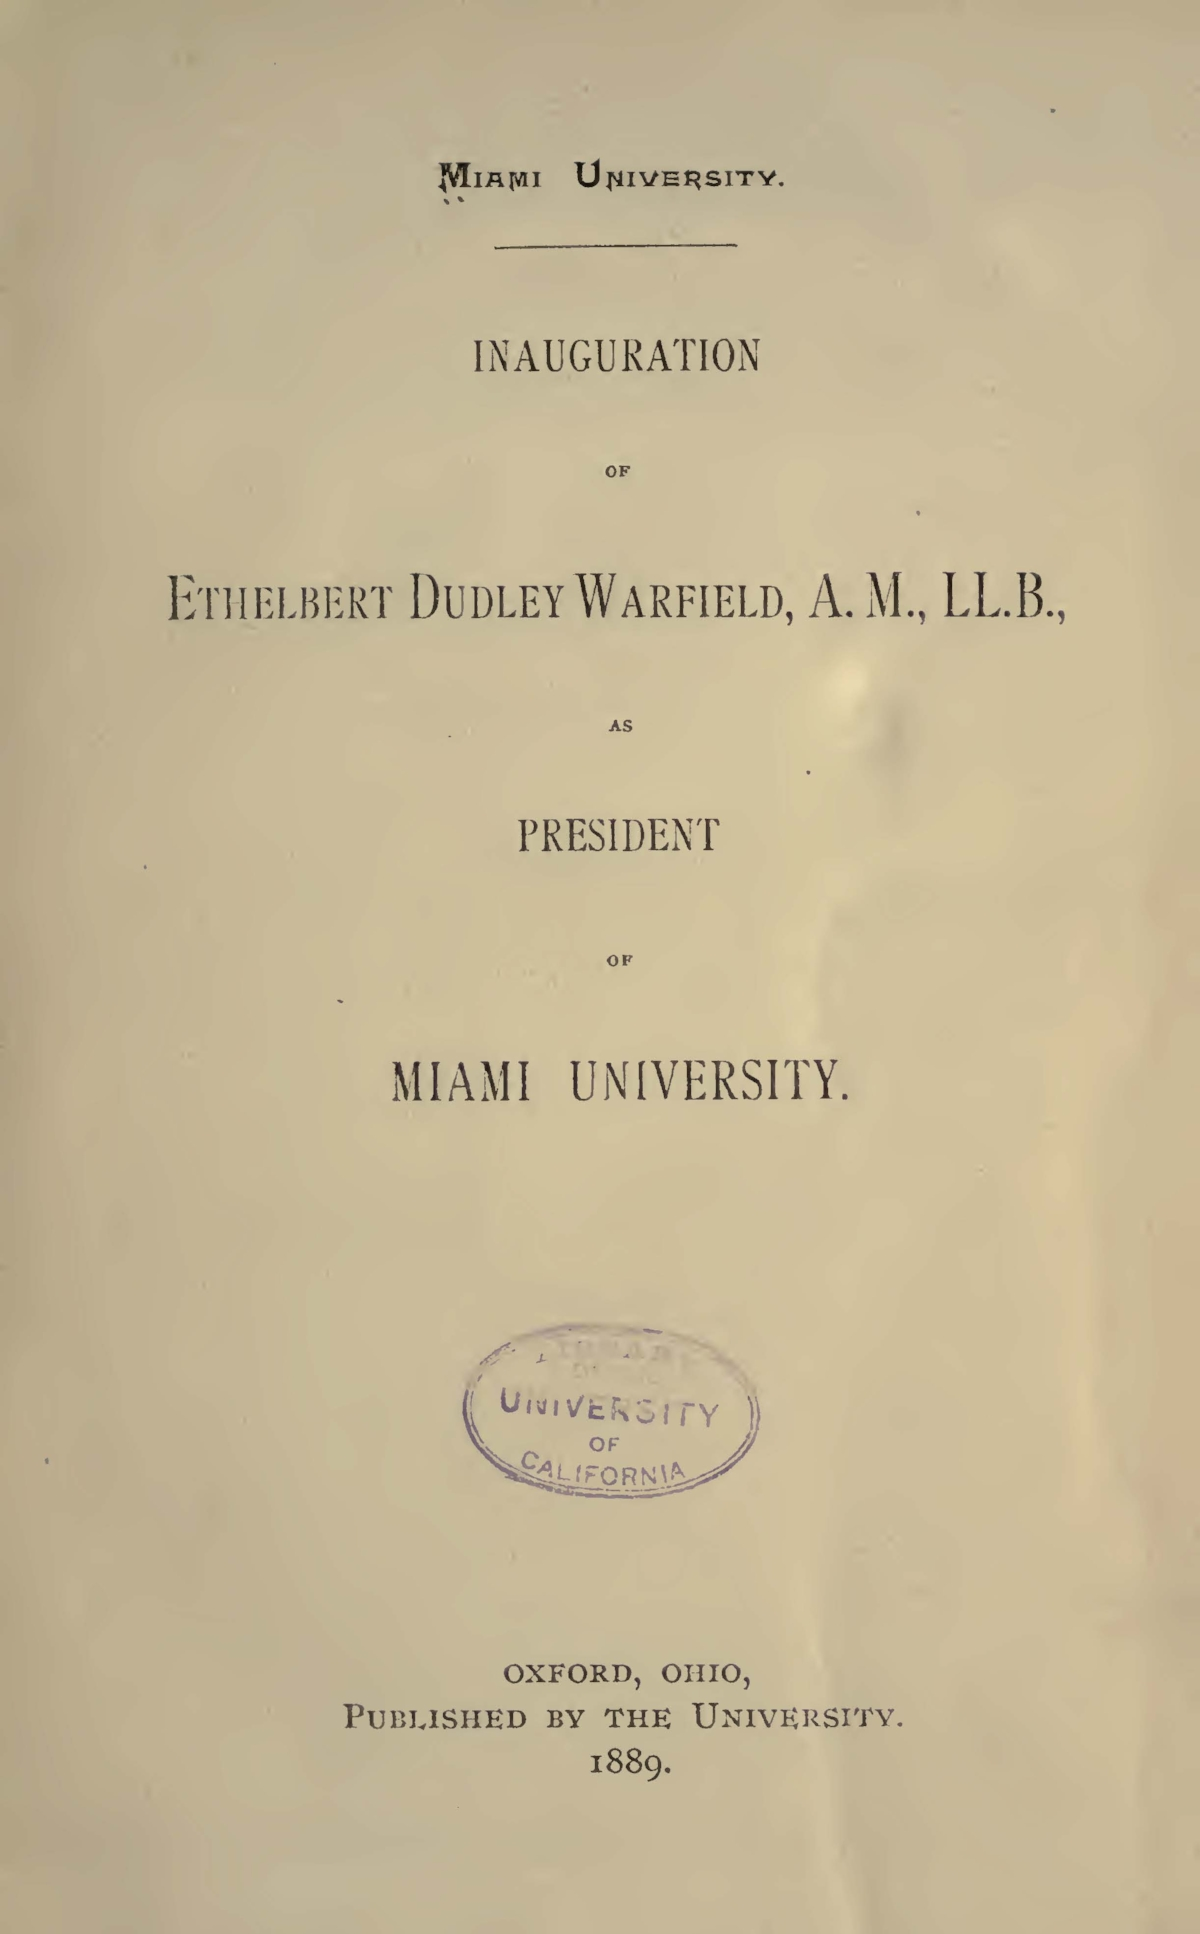 Warfield, Ethelbert Dudley, Inauguration of Ethelbert Dudley Warfield Title Page.jpg